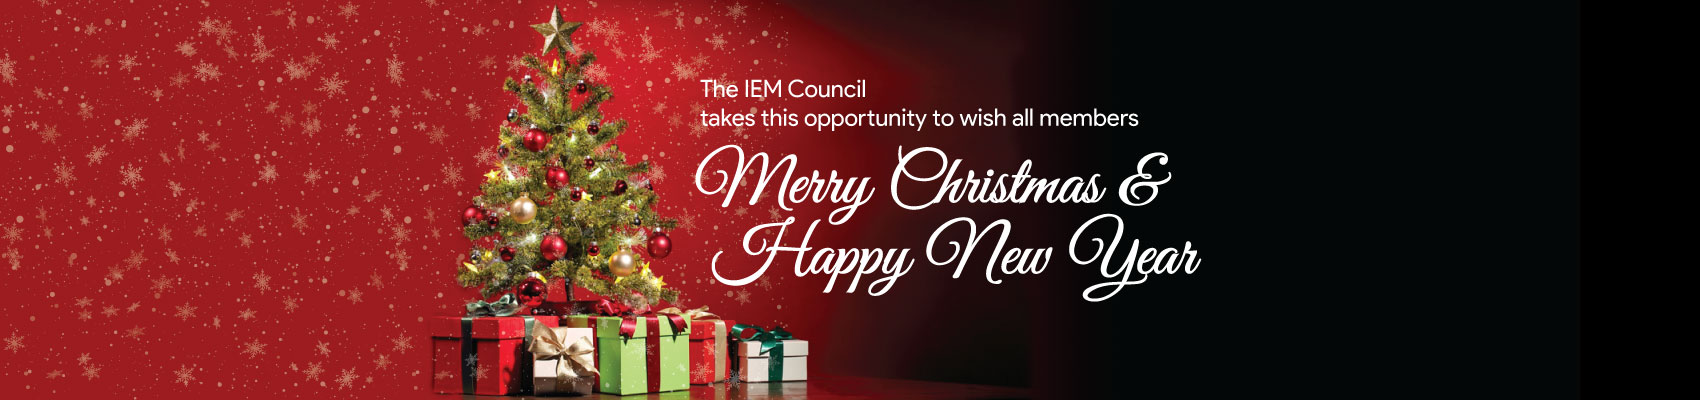 IEM - Merry Christmas & Happy New Year